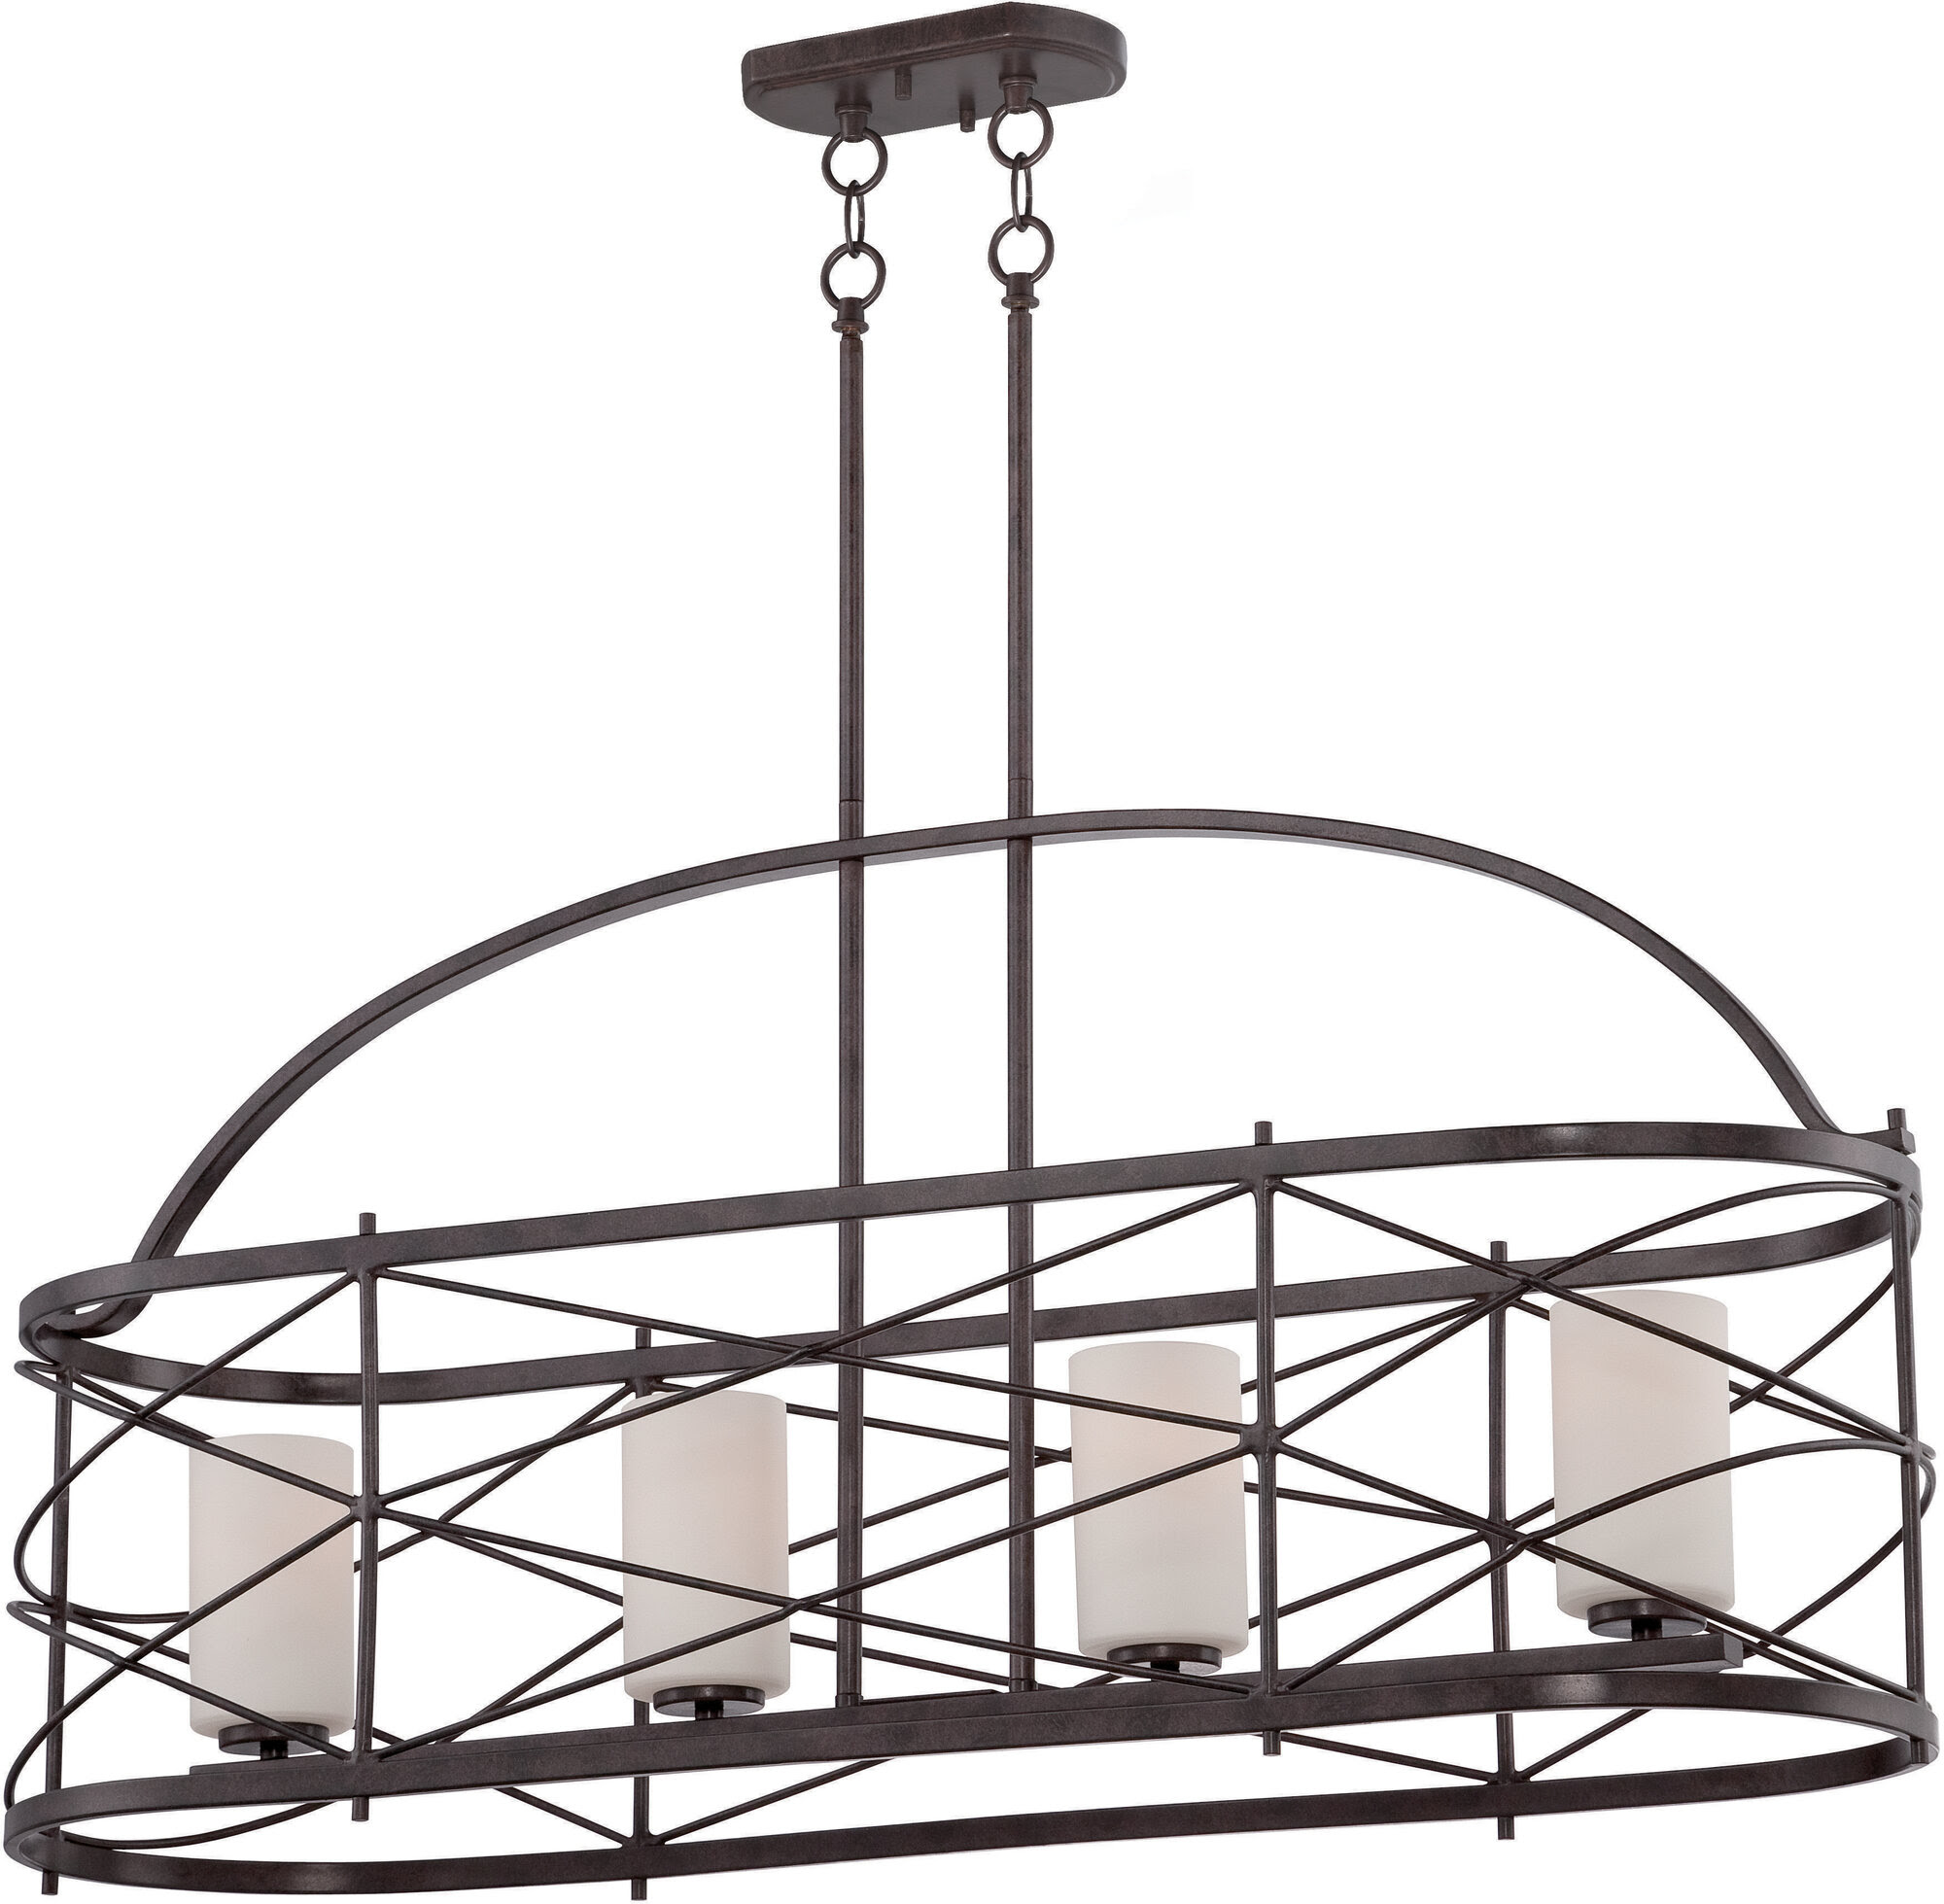 Nuvo Lighting Ginger 4 Light Kitchen Island Pendant  eBay